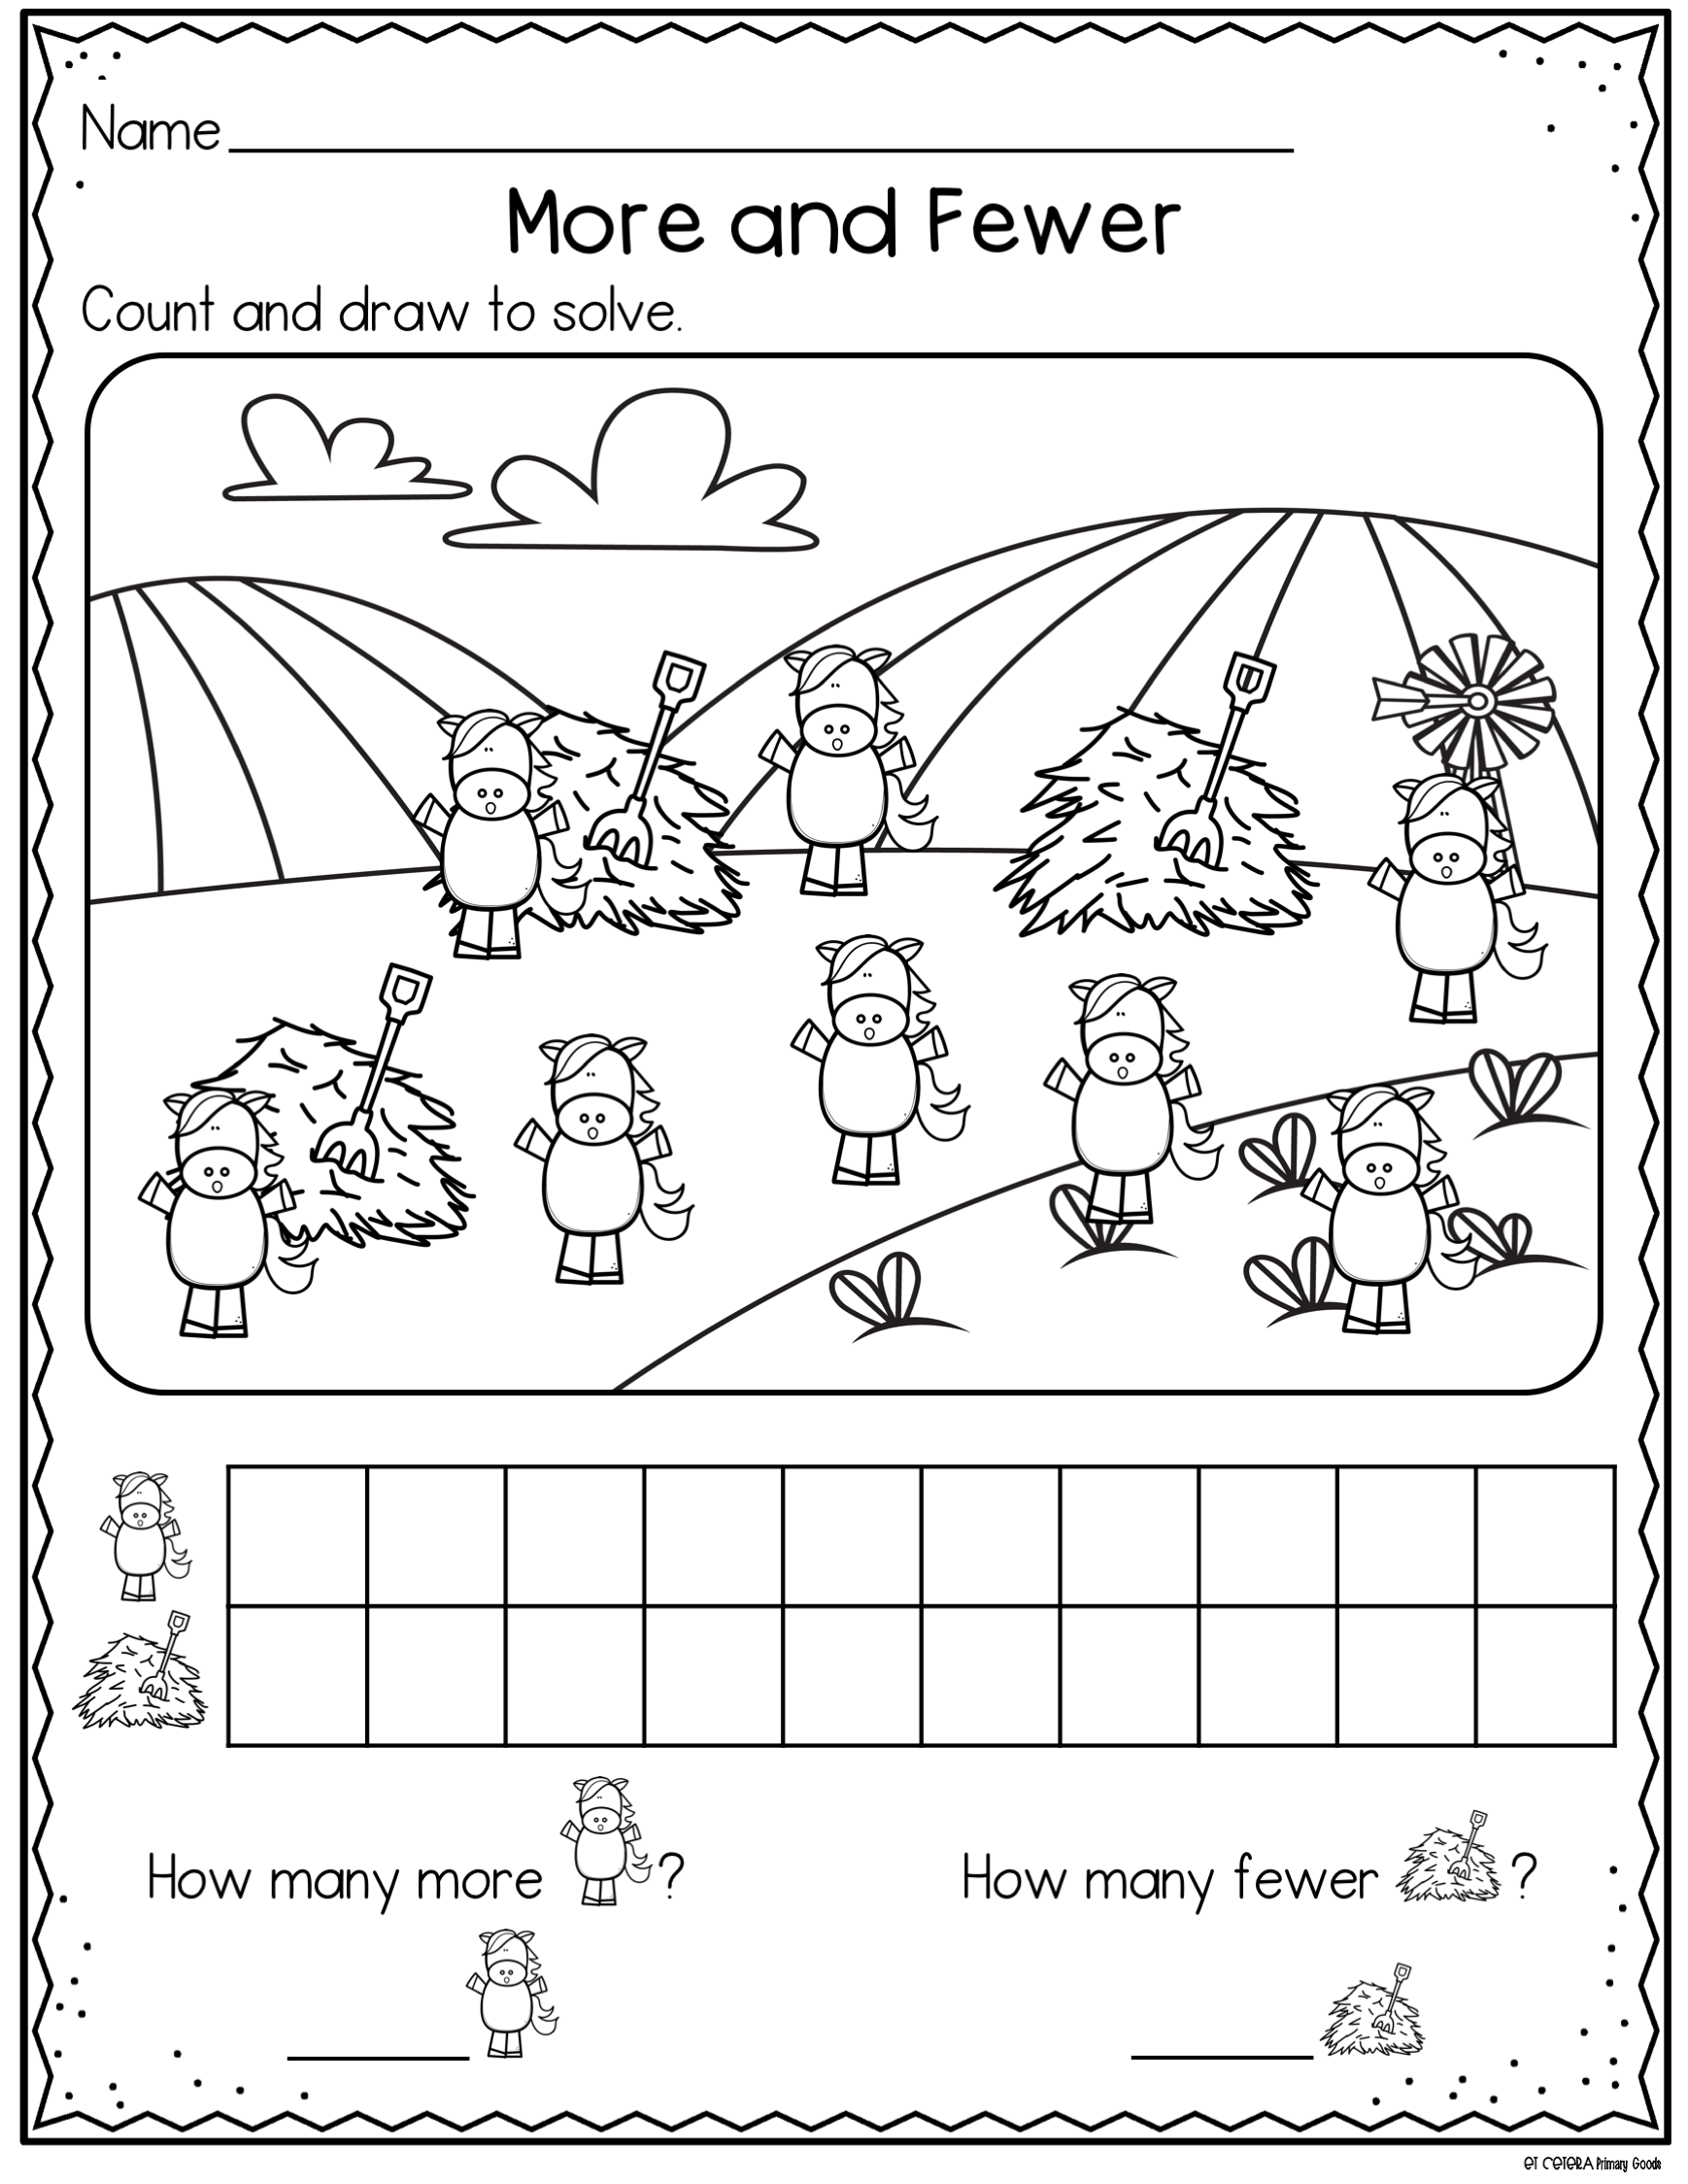 More and Fewer Comparing Sets   Kindergarten math worksheets [ 2249 x 1738 Pixel ]